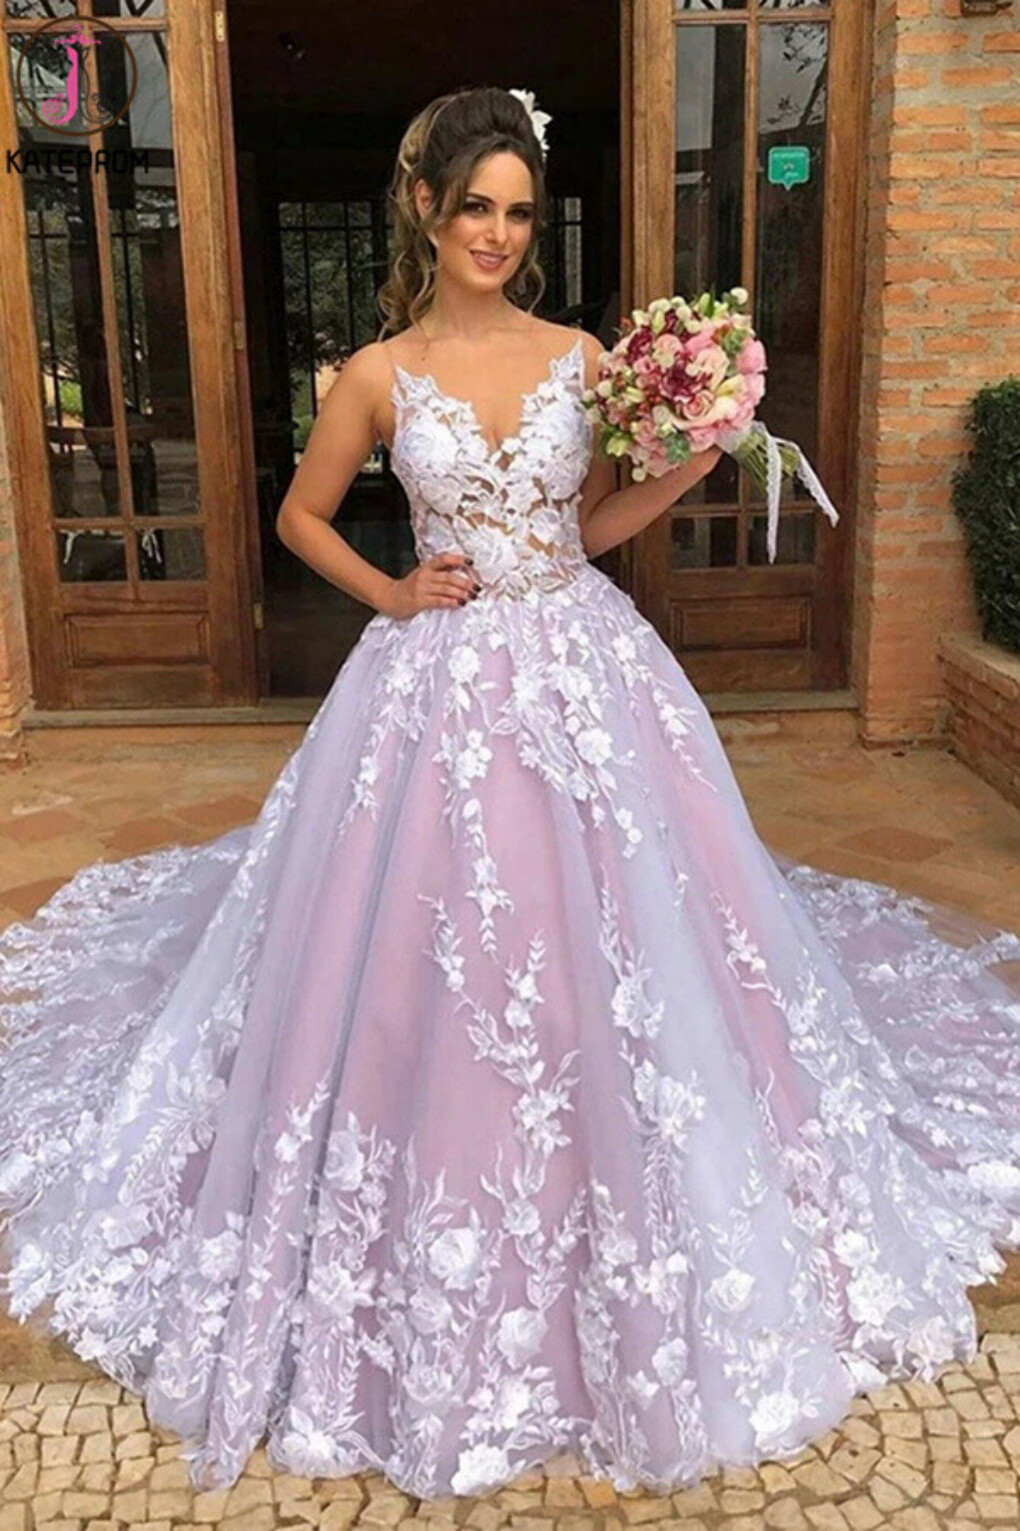 Kateprom A-line Sleeveless V Neck Tulle Appliques Pink Long Prom Wedding Gown KPW0627